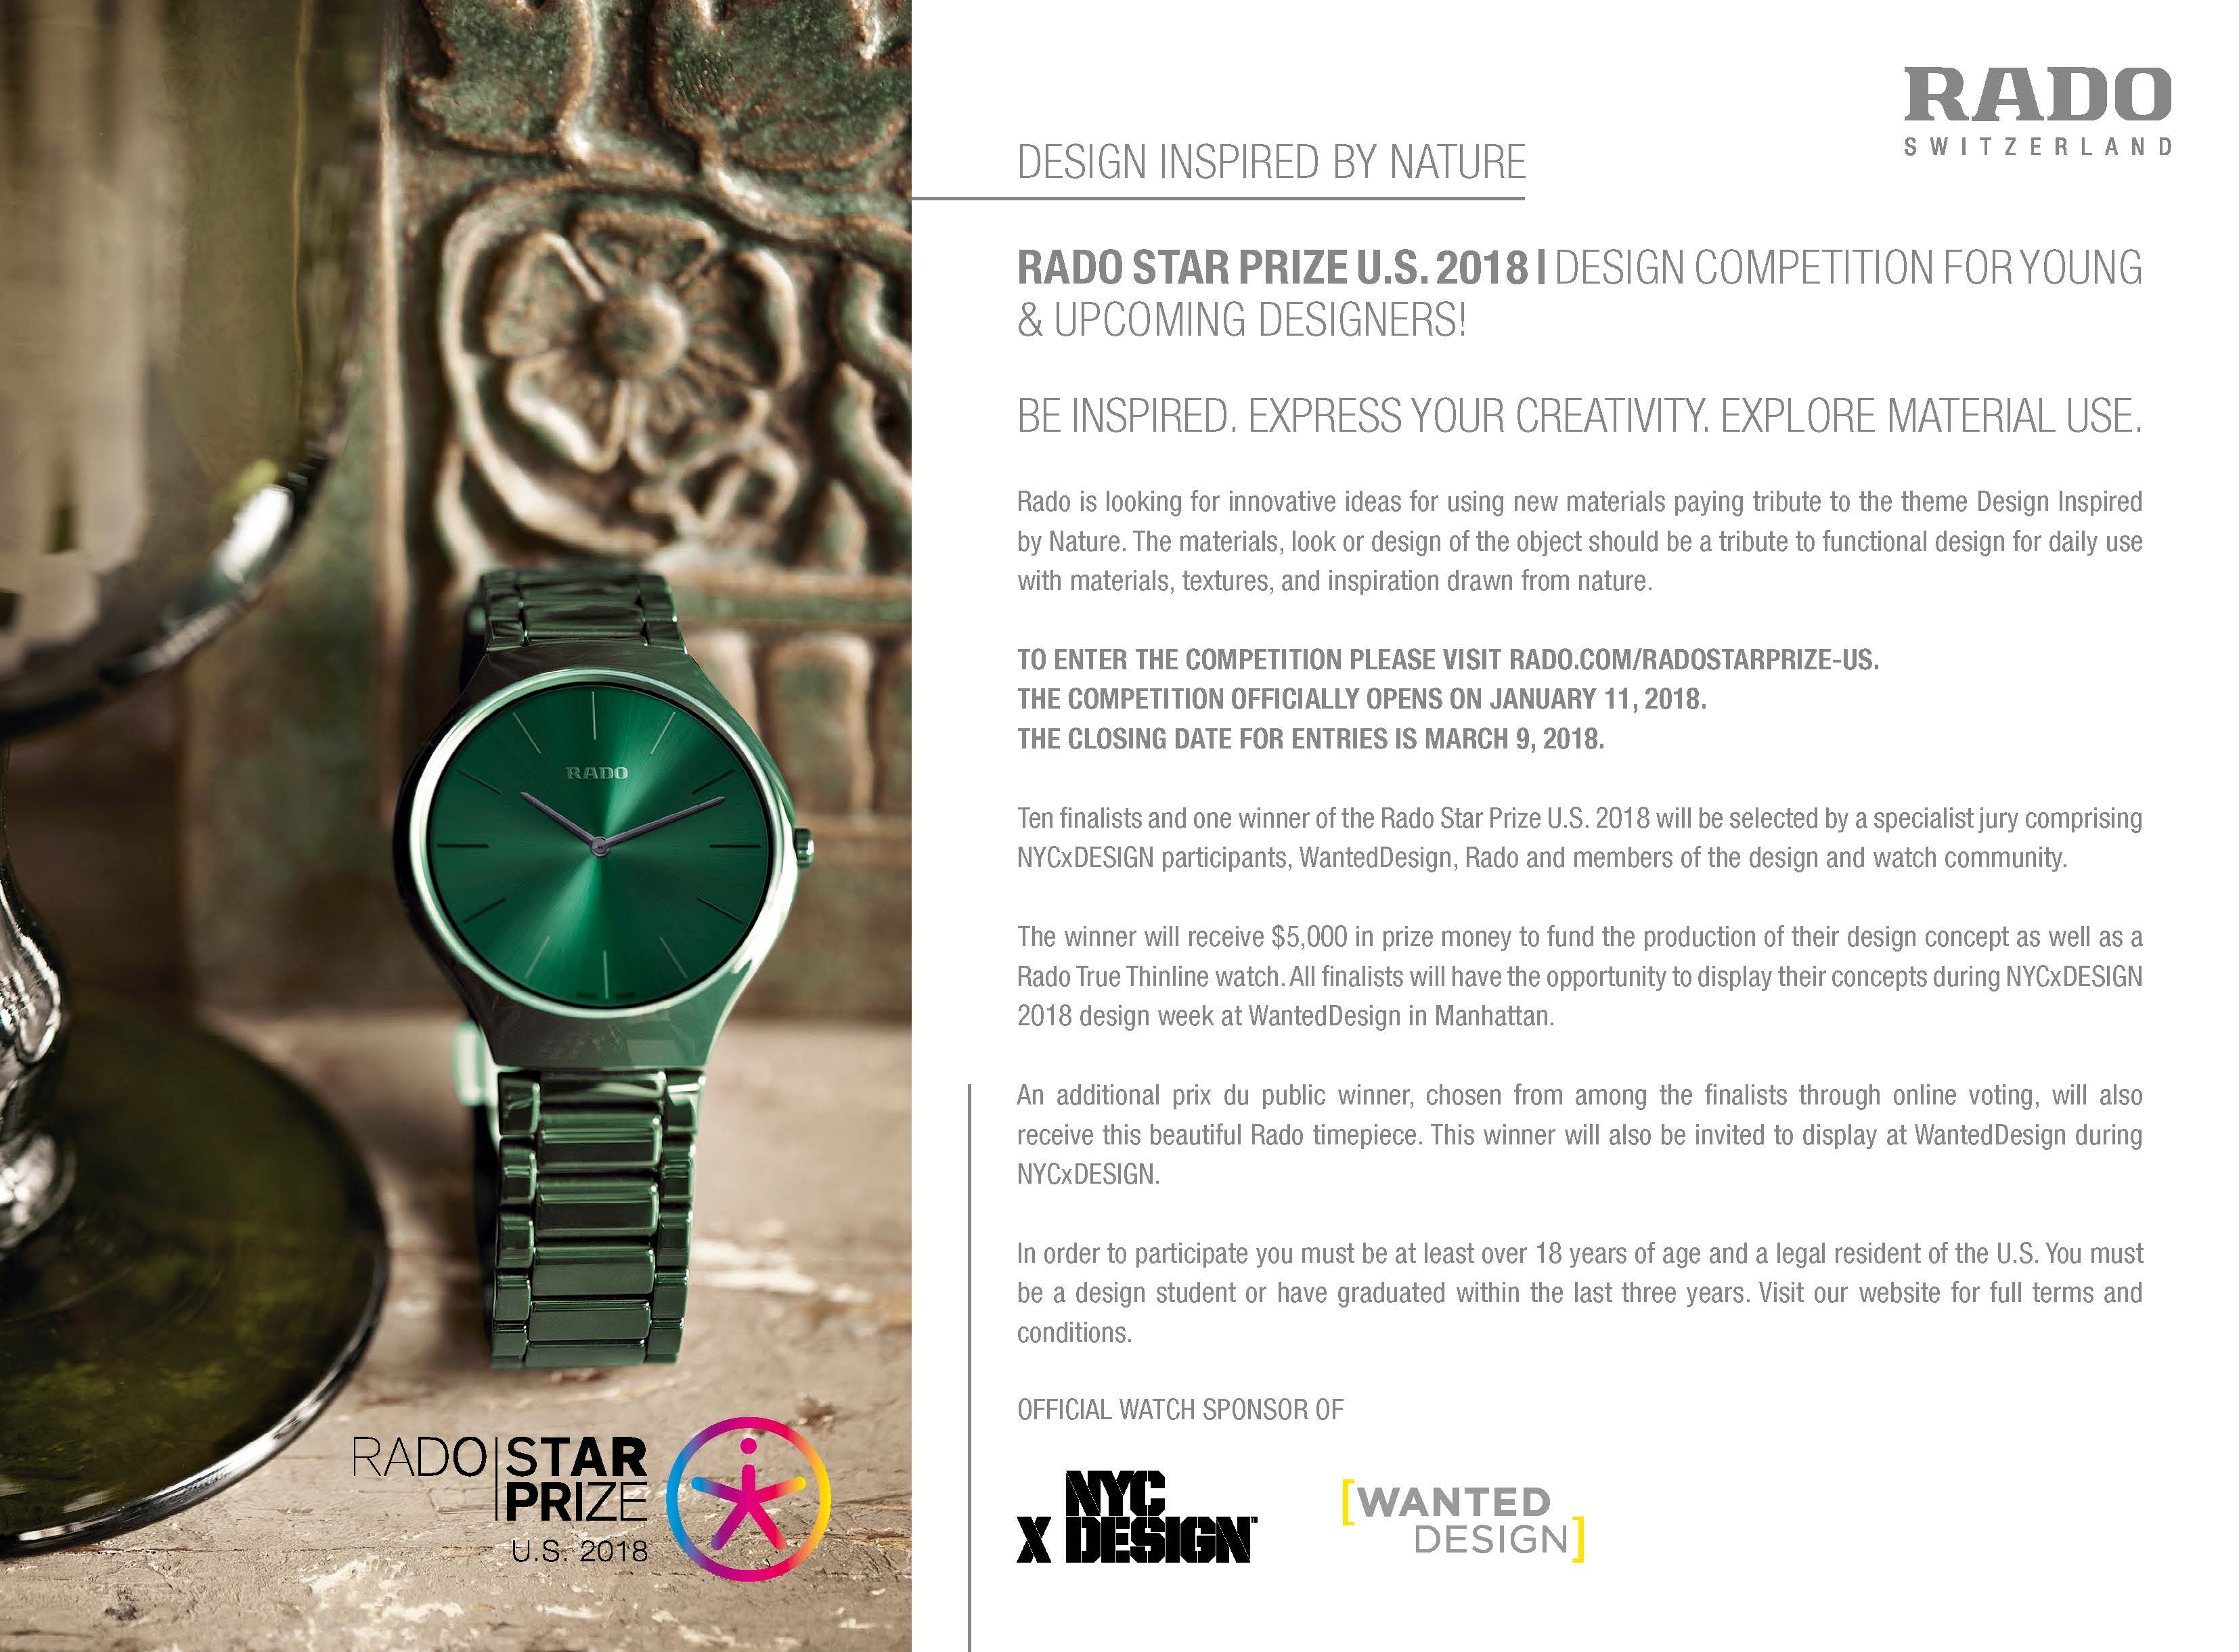 call for submissions nycxdesign awards nyc design For 2018, NYCxDESIGN is pleased to have Swiss watchmaker, Rado, return as  the Official Watch Sponsor of NYCxDESIGN. As part of its participation, ...